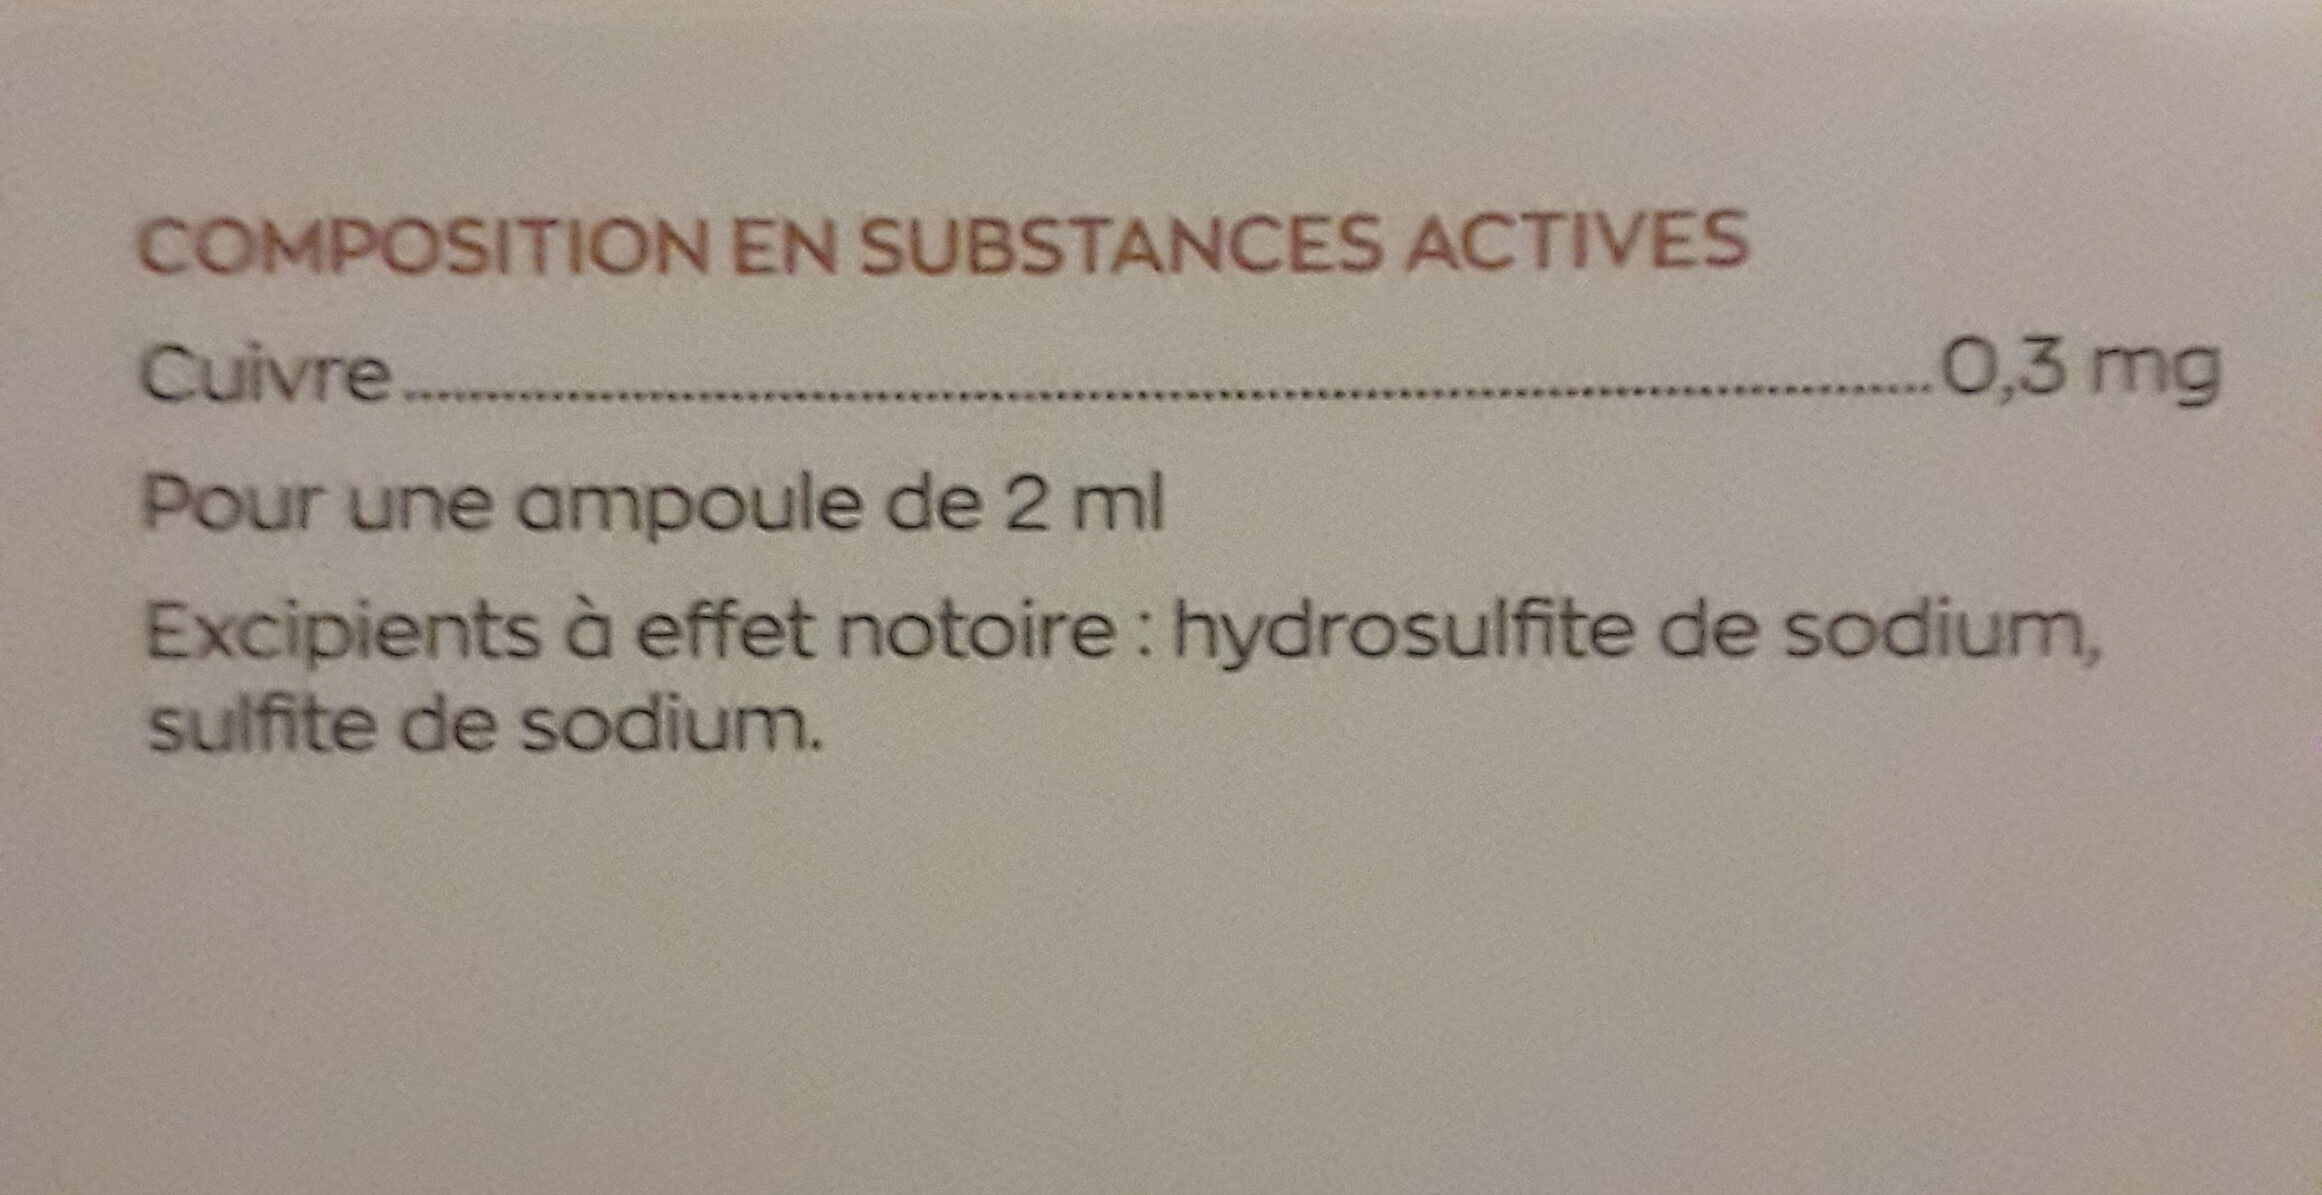 granions de cuivre - Ingredients - fr